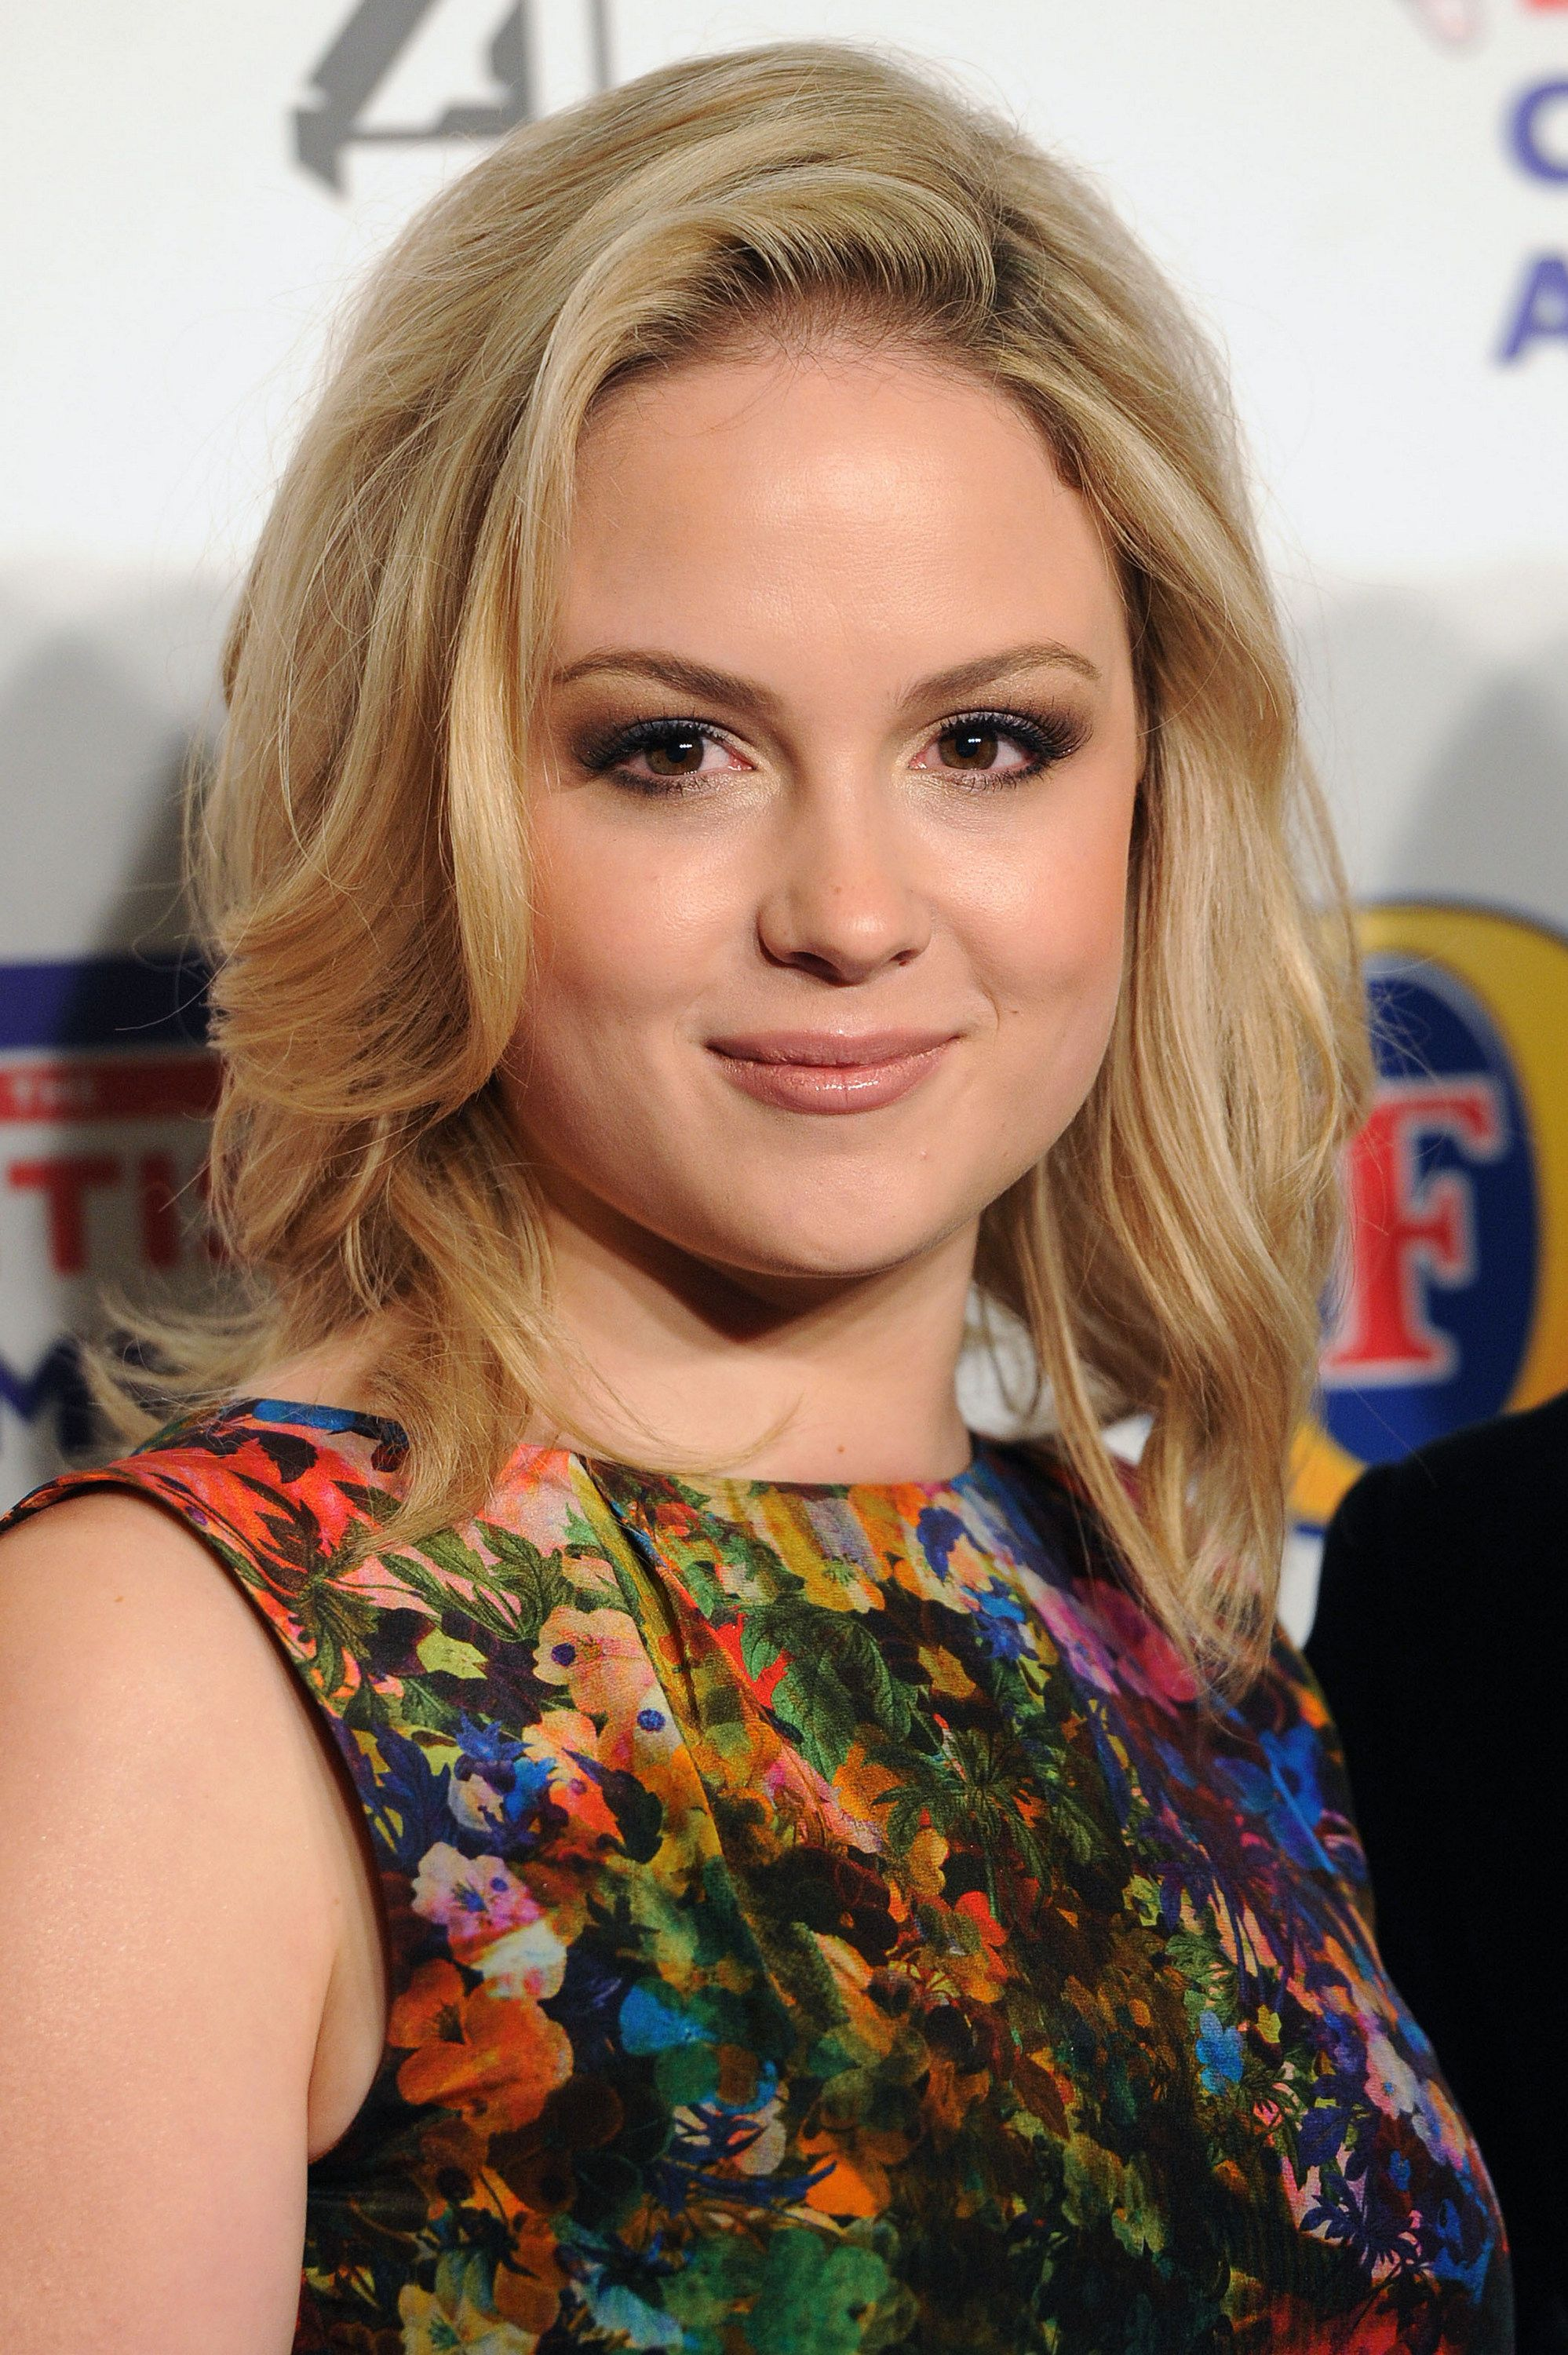 Kimberley Nixon nudes (96 photos), Sexy, Is a cute, Twitter, underwear 2019